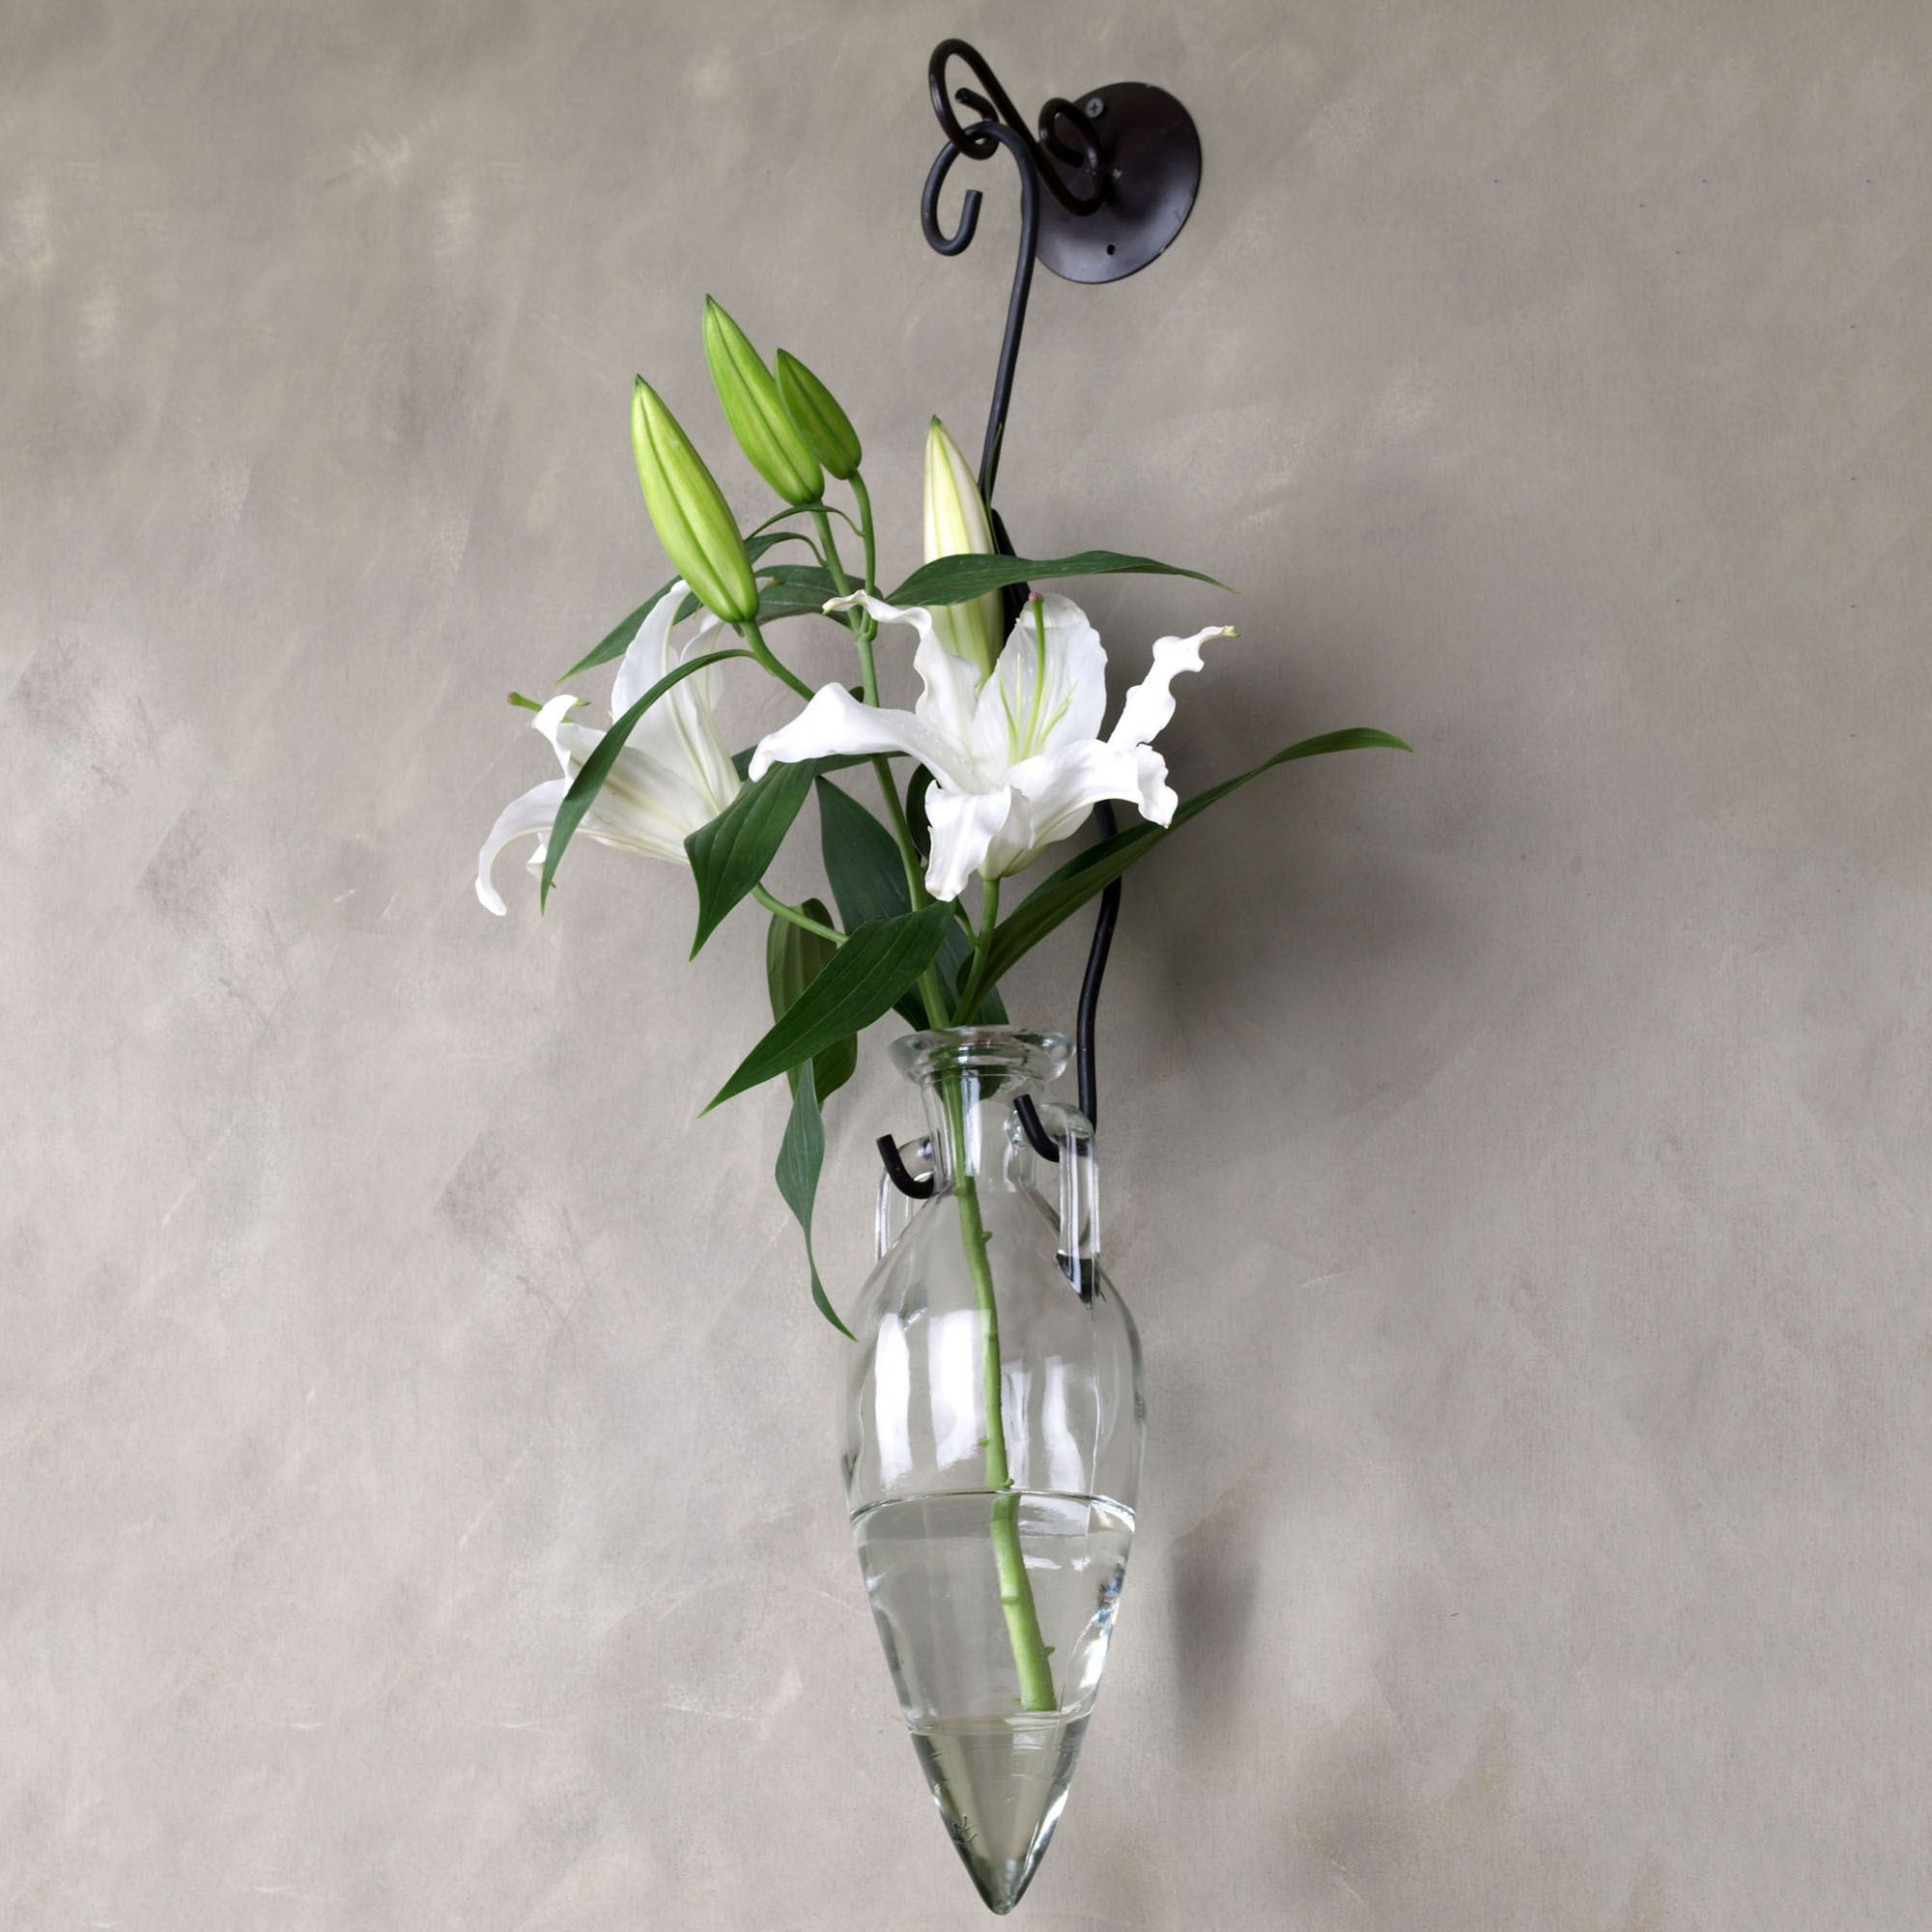 Tall Vases for Living Room India Of Collection Of Hanging Glass Vases Wall Vases Artificial Plants for Hanging Glass Vases Wall Gallery H Vases Wall Hanging Flower Vase Newspaper I 0d Scheme Wall